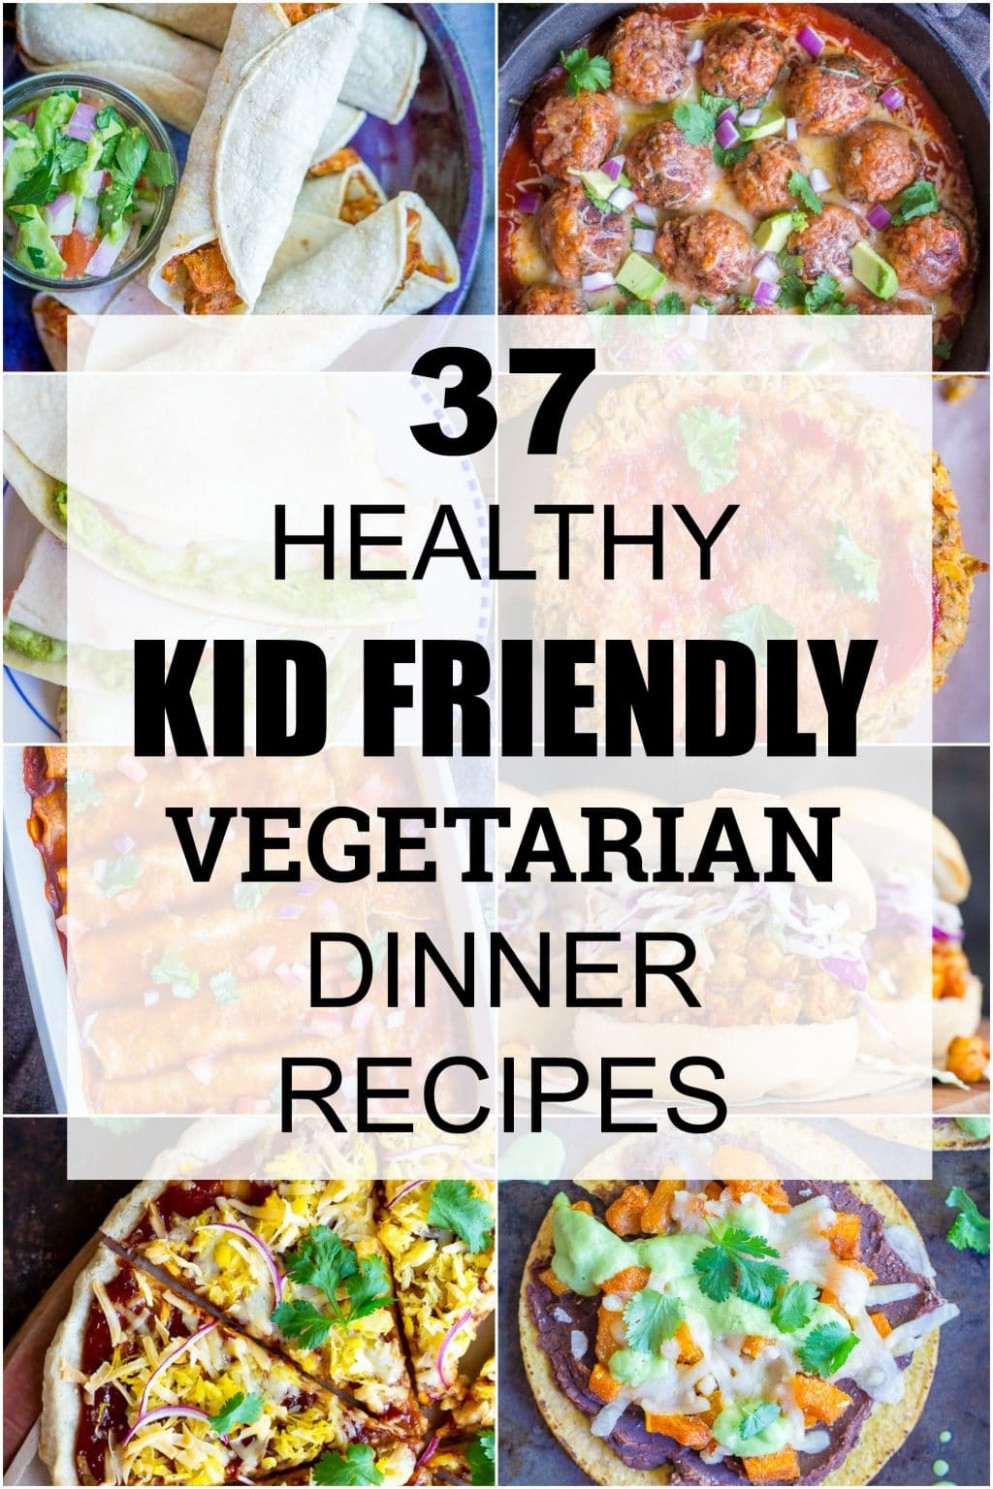 8 Healthy Kid Friendly Vegetarian Dinner Recipes - She ...